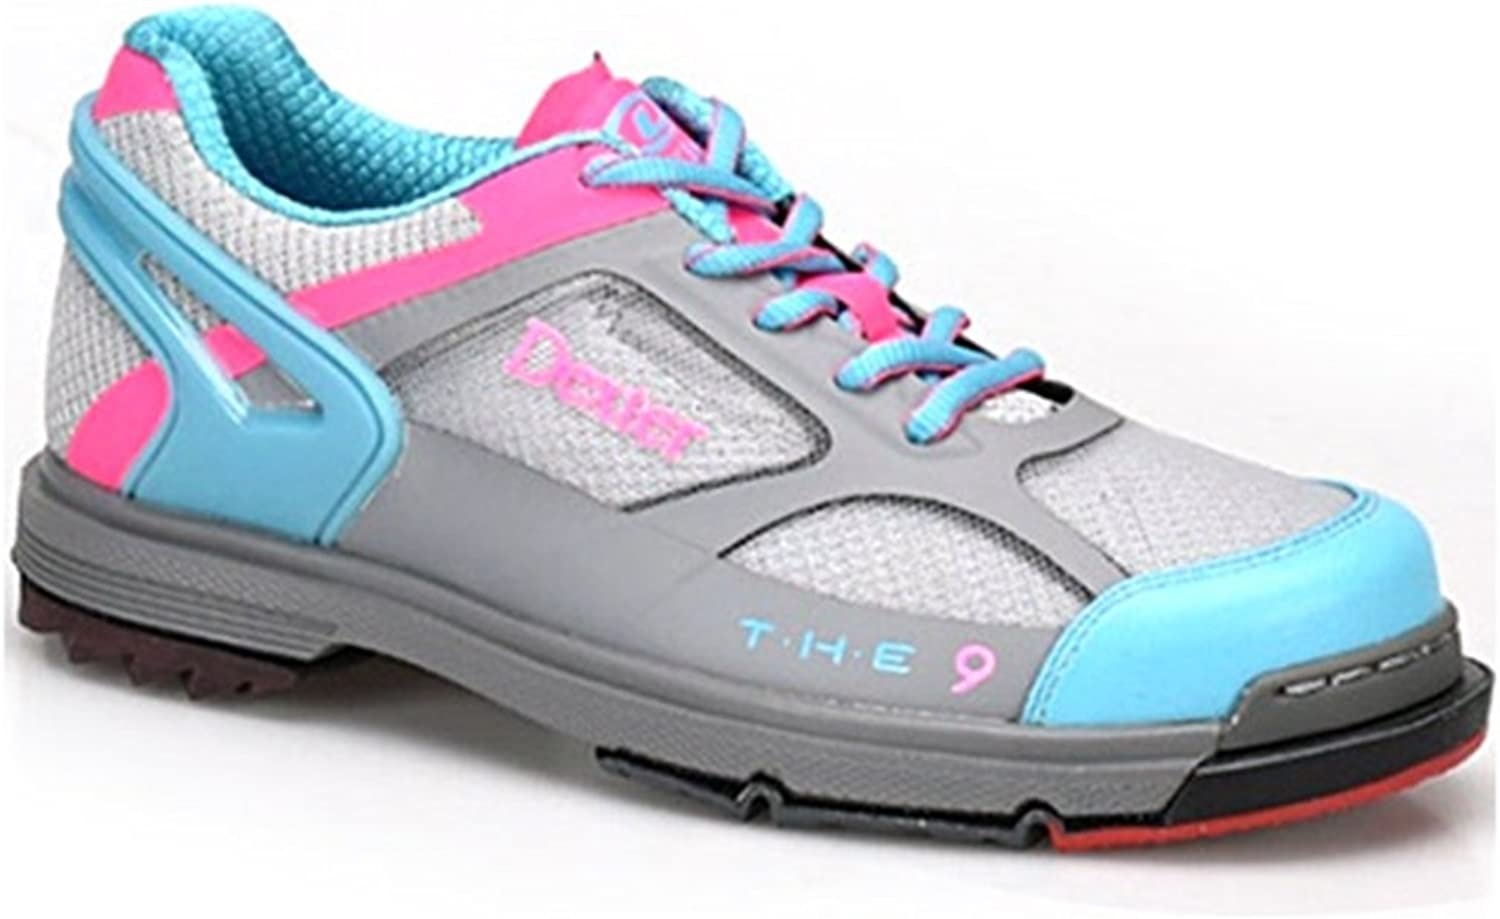 Dexter Womens SST The 9 Bowling shoes- Grey bluee Pink